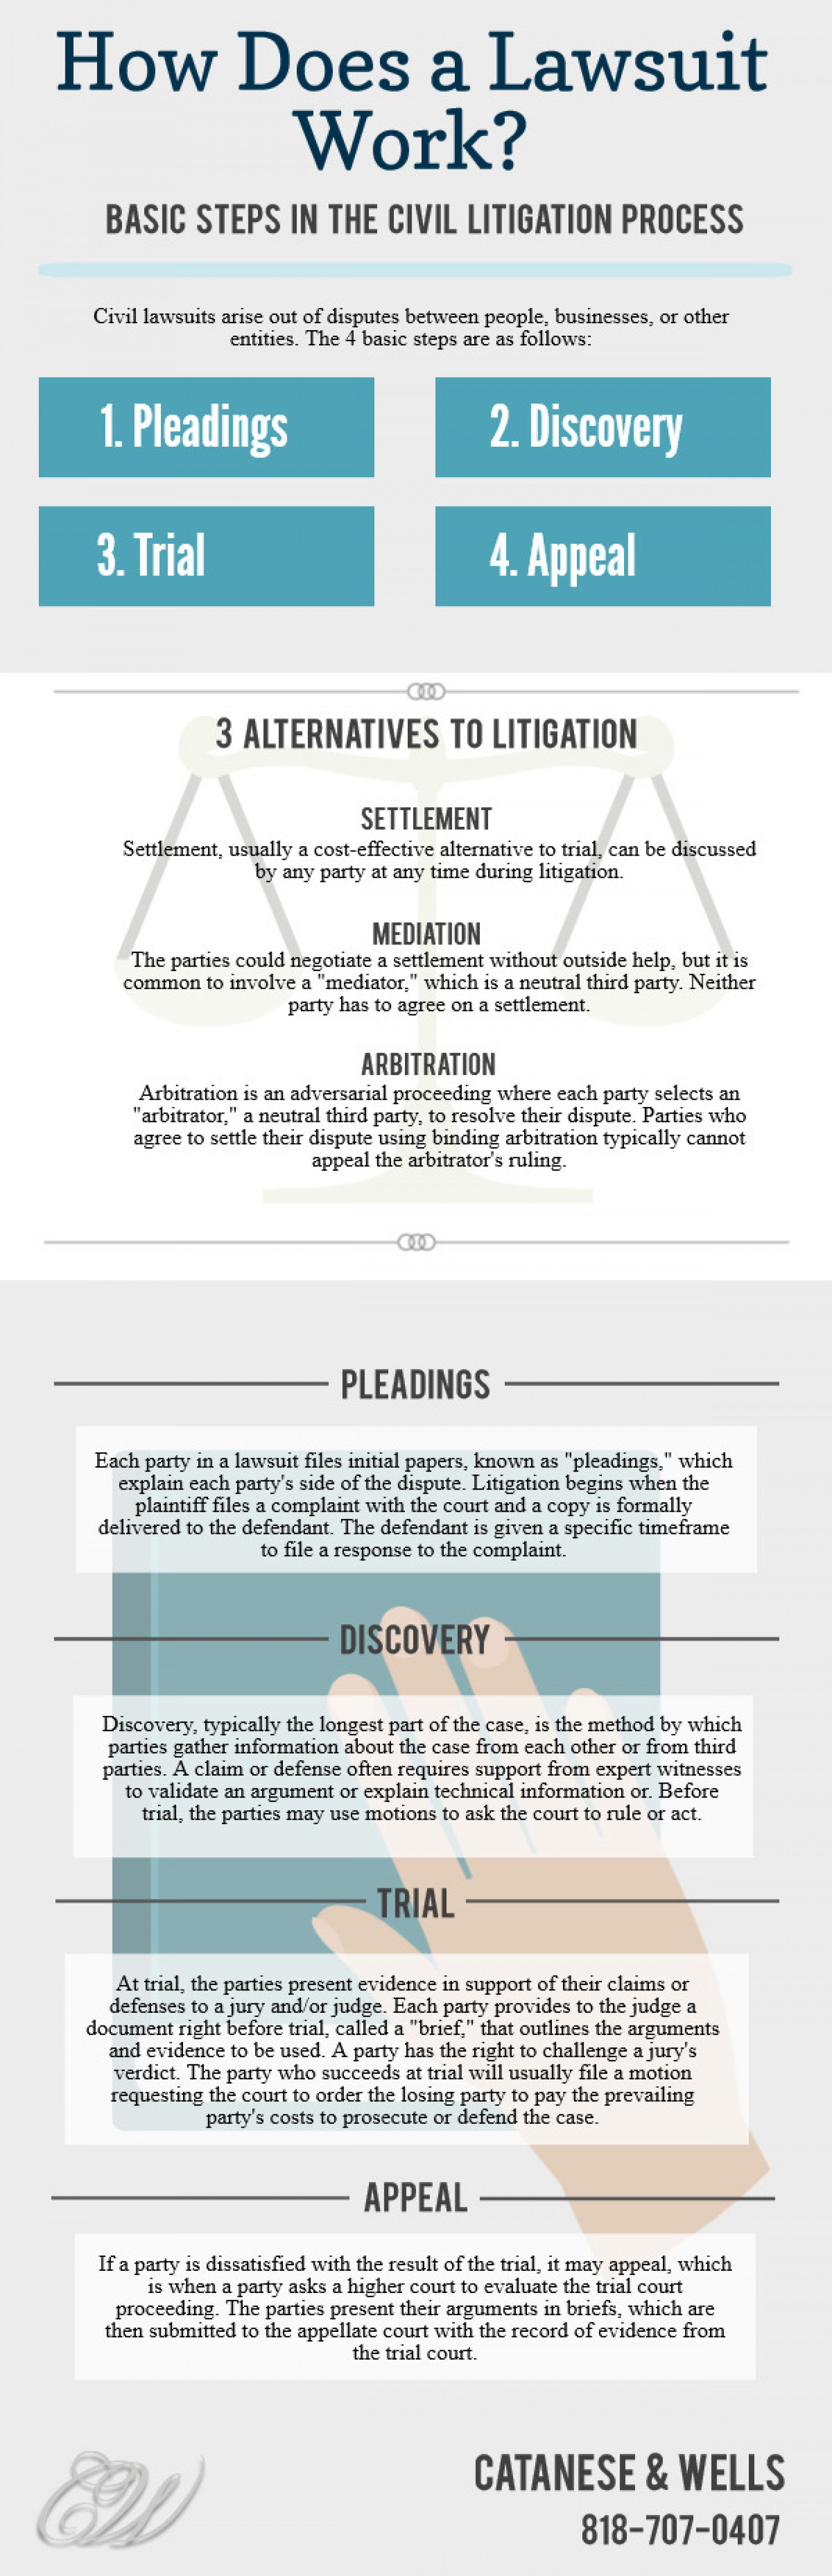 How Does A Lawsuit Work? Infographic